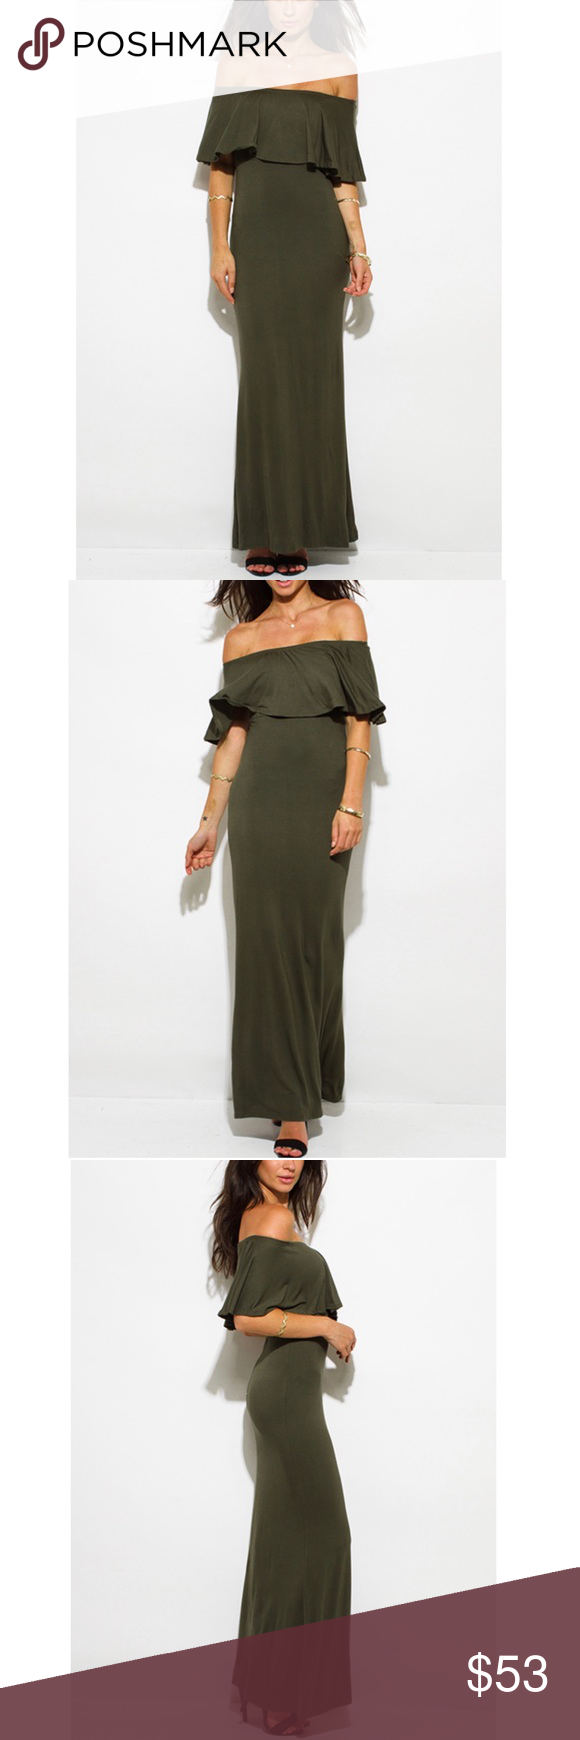 PRE-SALE❤️OLIVE RUFFLE OFF SHOULDER MAXI This elegant and feminine evening dress is trendy yet timeless, featuring sexy off shoulder design with eye catching ruffle and sultry silhouette. Medium weight stretchy rayon jersey looks & feels luxurious and perfect for both formal events and cocktail parties alike. Stretchy. 95% rayon, 5% spandex. Comes in S M L. Waunda's Closet Dresses Maxi